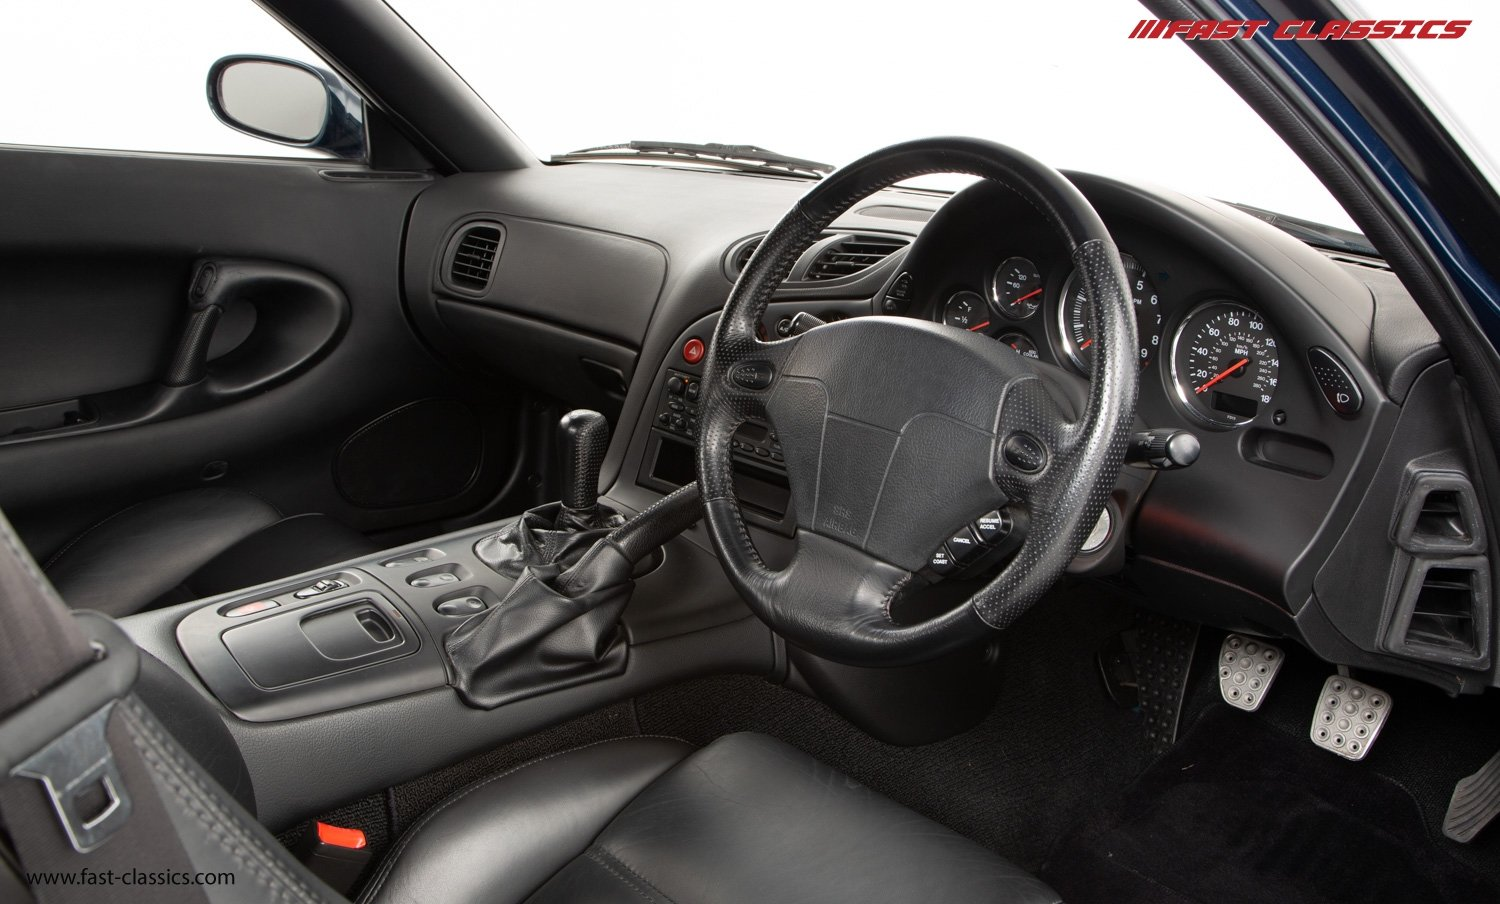 1993 MAZDA RX-7 FD // FAMILY OWNED // 26K MILES // 1 OF 210 UK DE For Sale (picture 14 of 23)